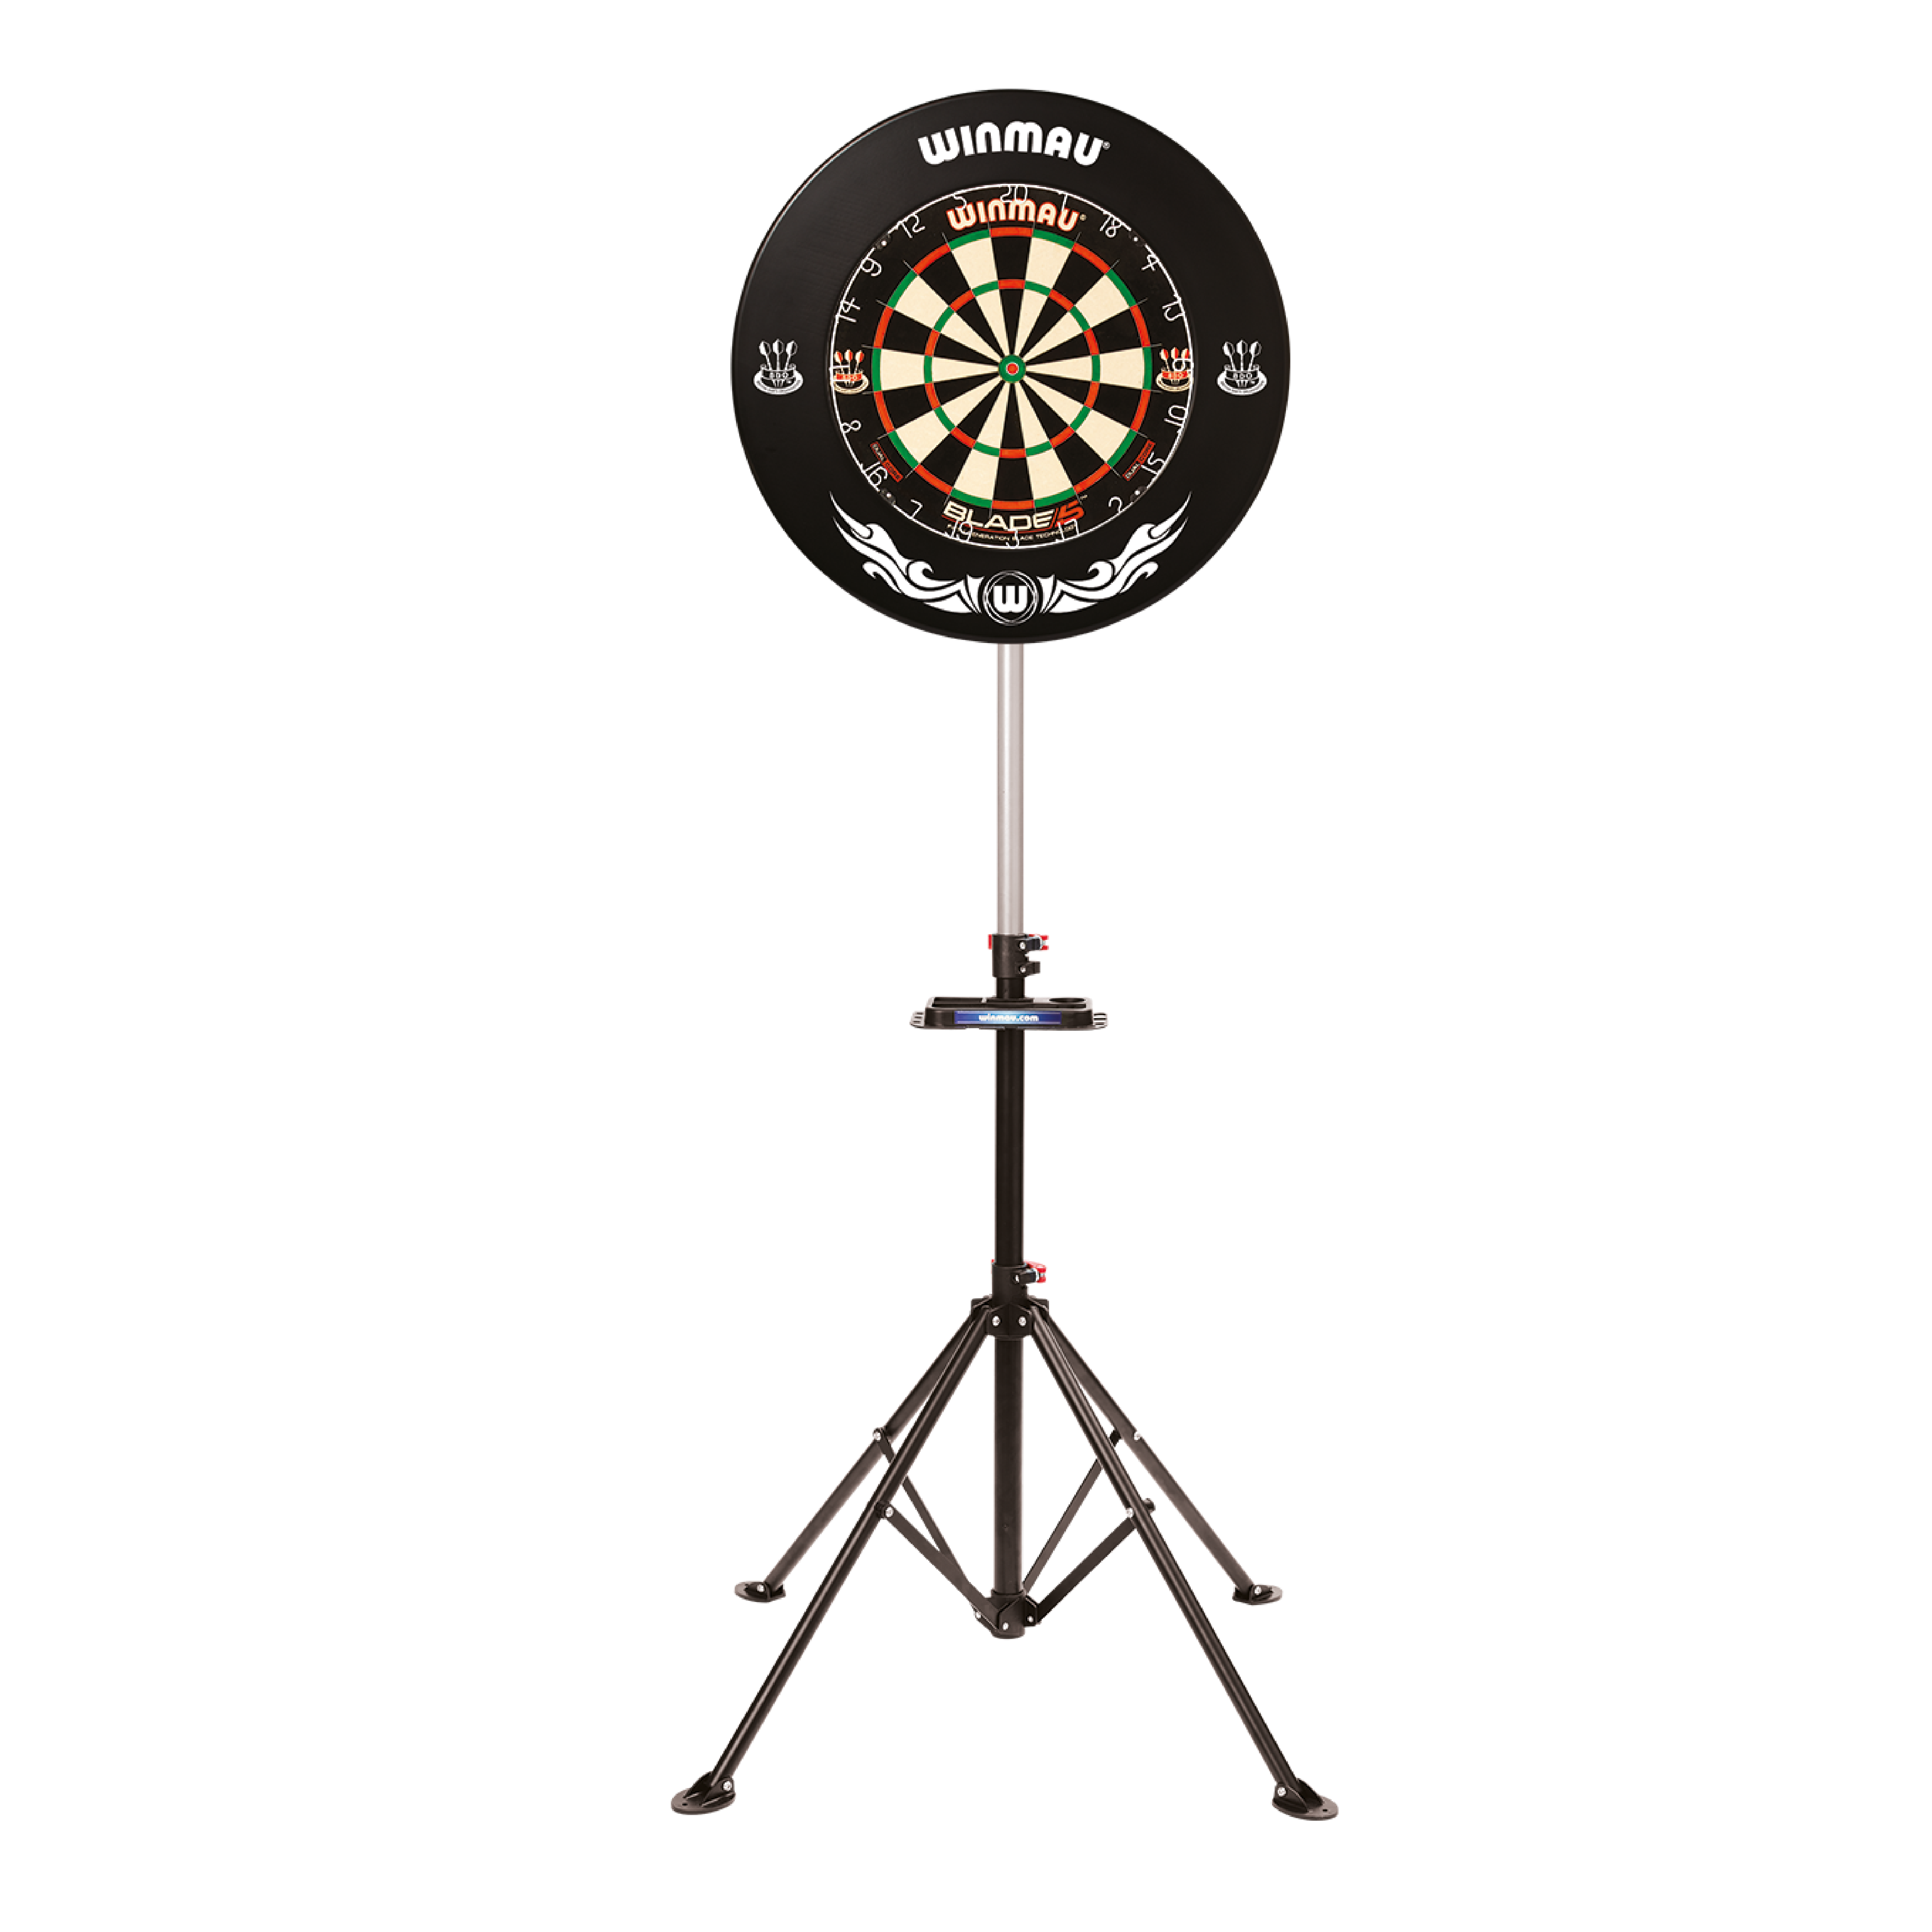 winmau xtreme dartboard stand 2 play where ever darts billard shop bce ltd darts. Black Bedroom Furniture Sets. Home Design Ideas